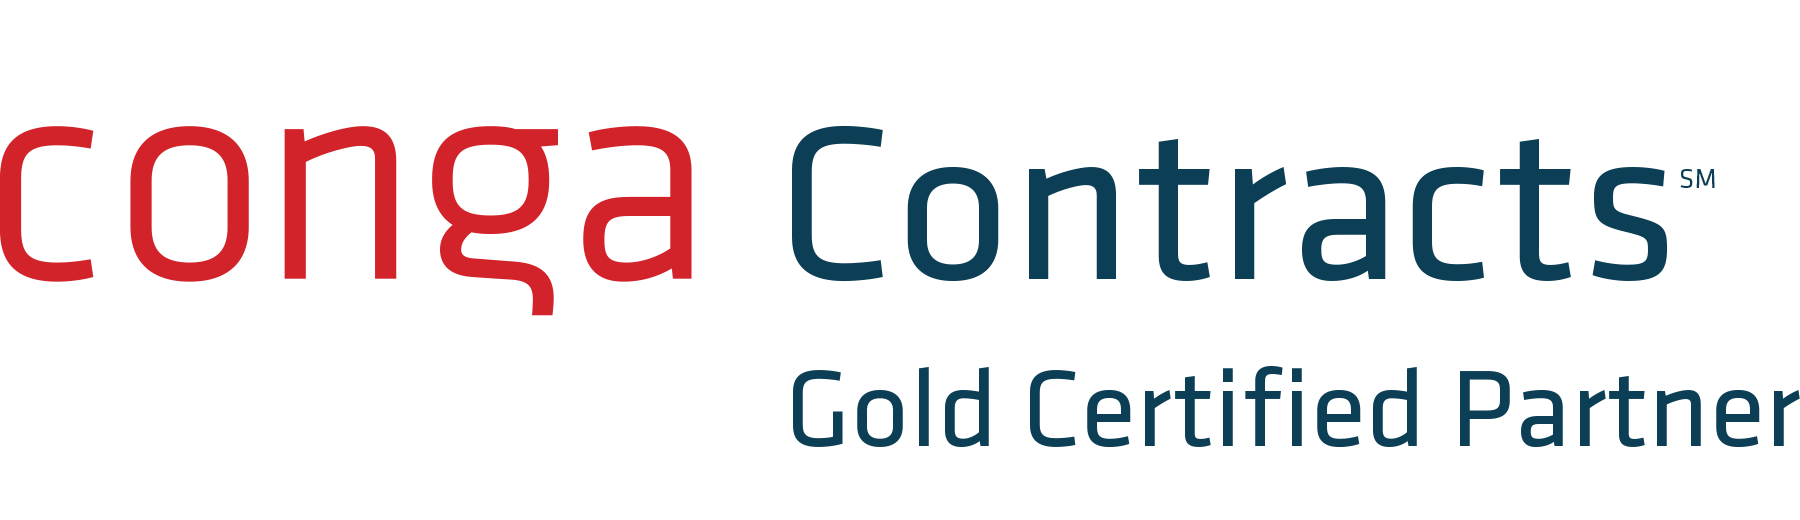 ContractsGoldCertifiedPartner_2color akaCRM - Industries